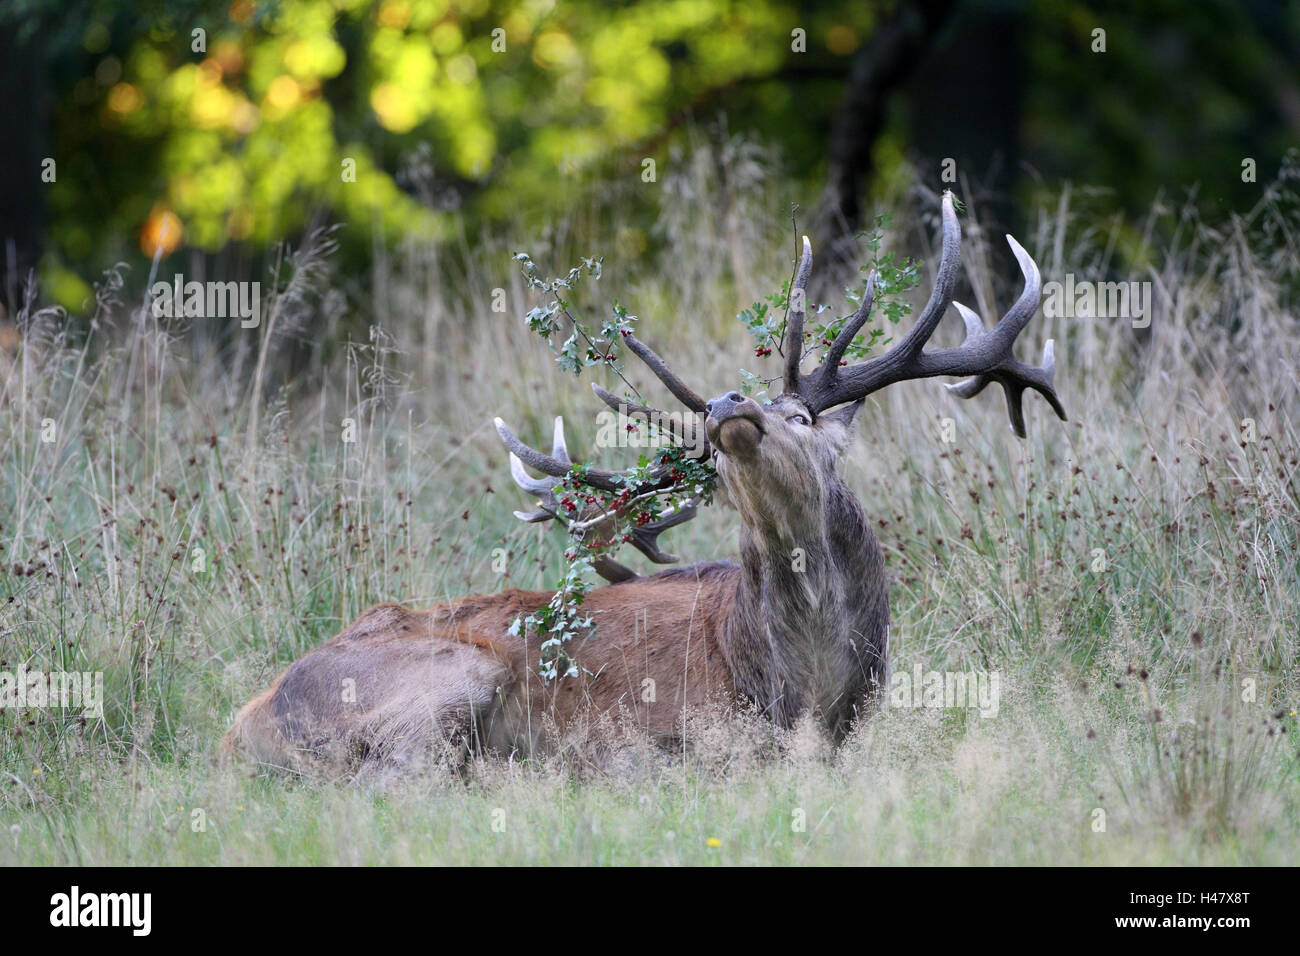 Red Deer, herbe, mensonge, bois, branches, Photo Stock